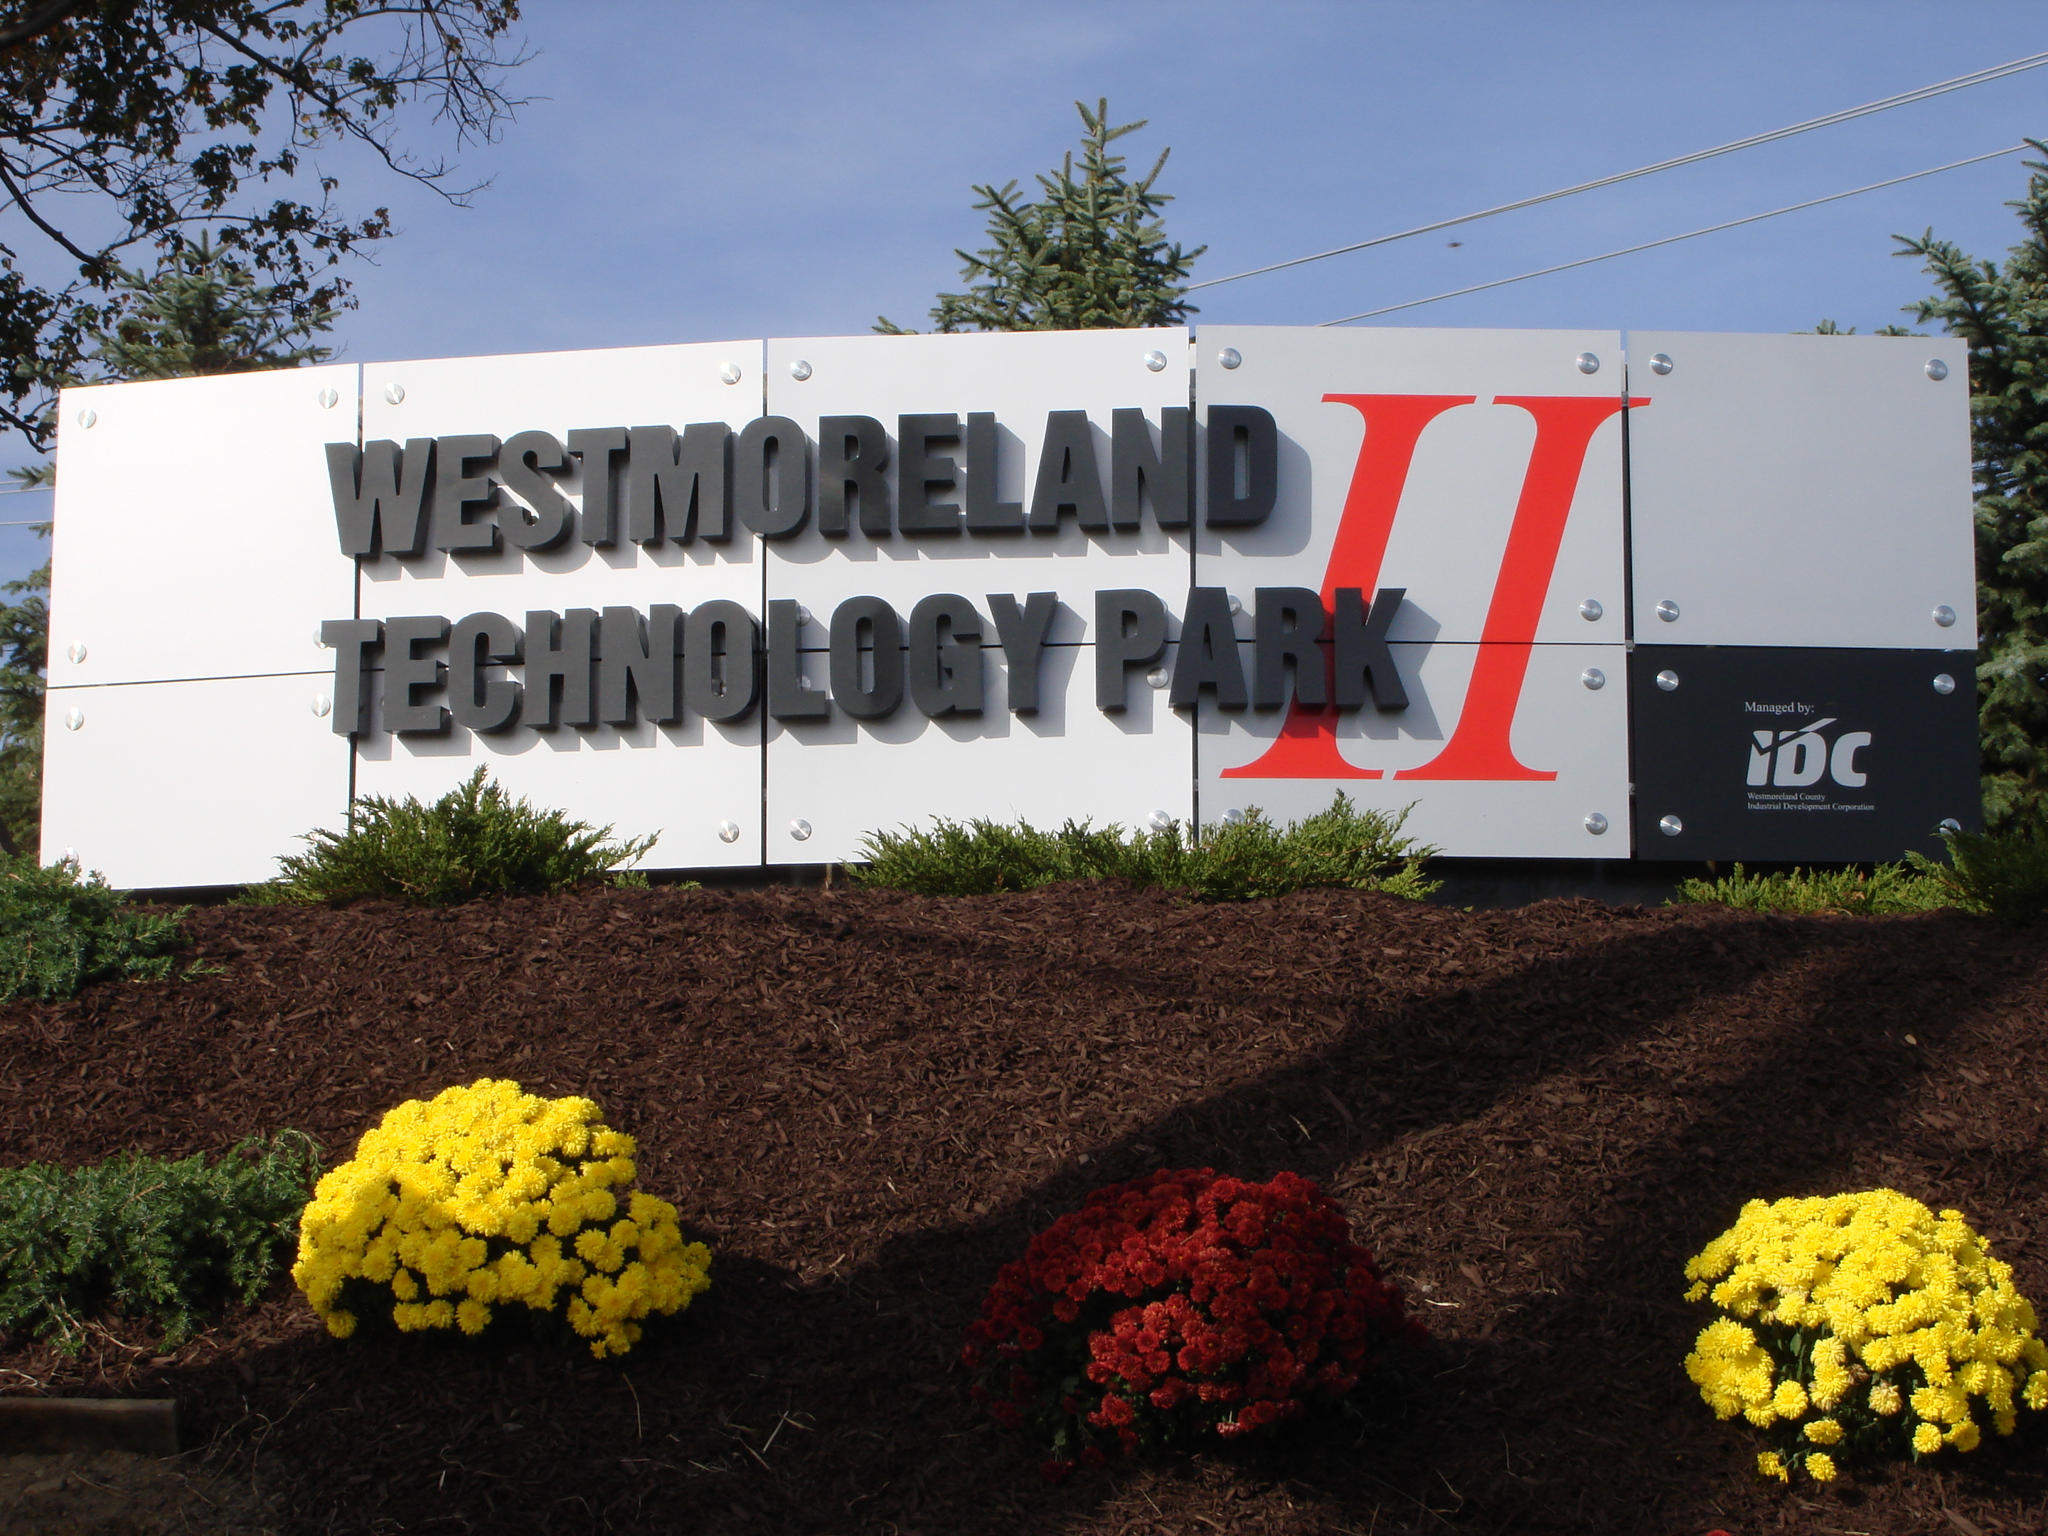 Entrance Sign Technology Park II